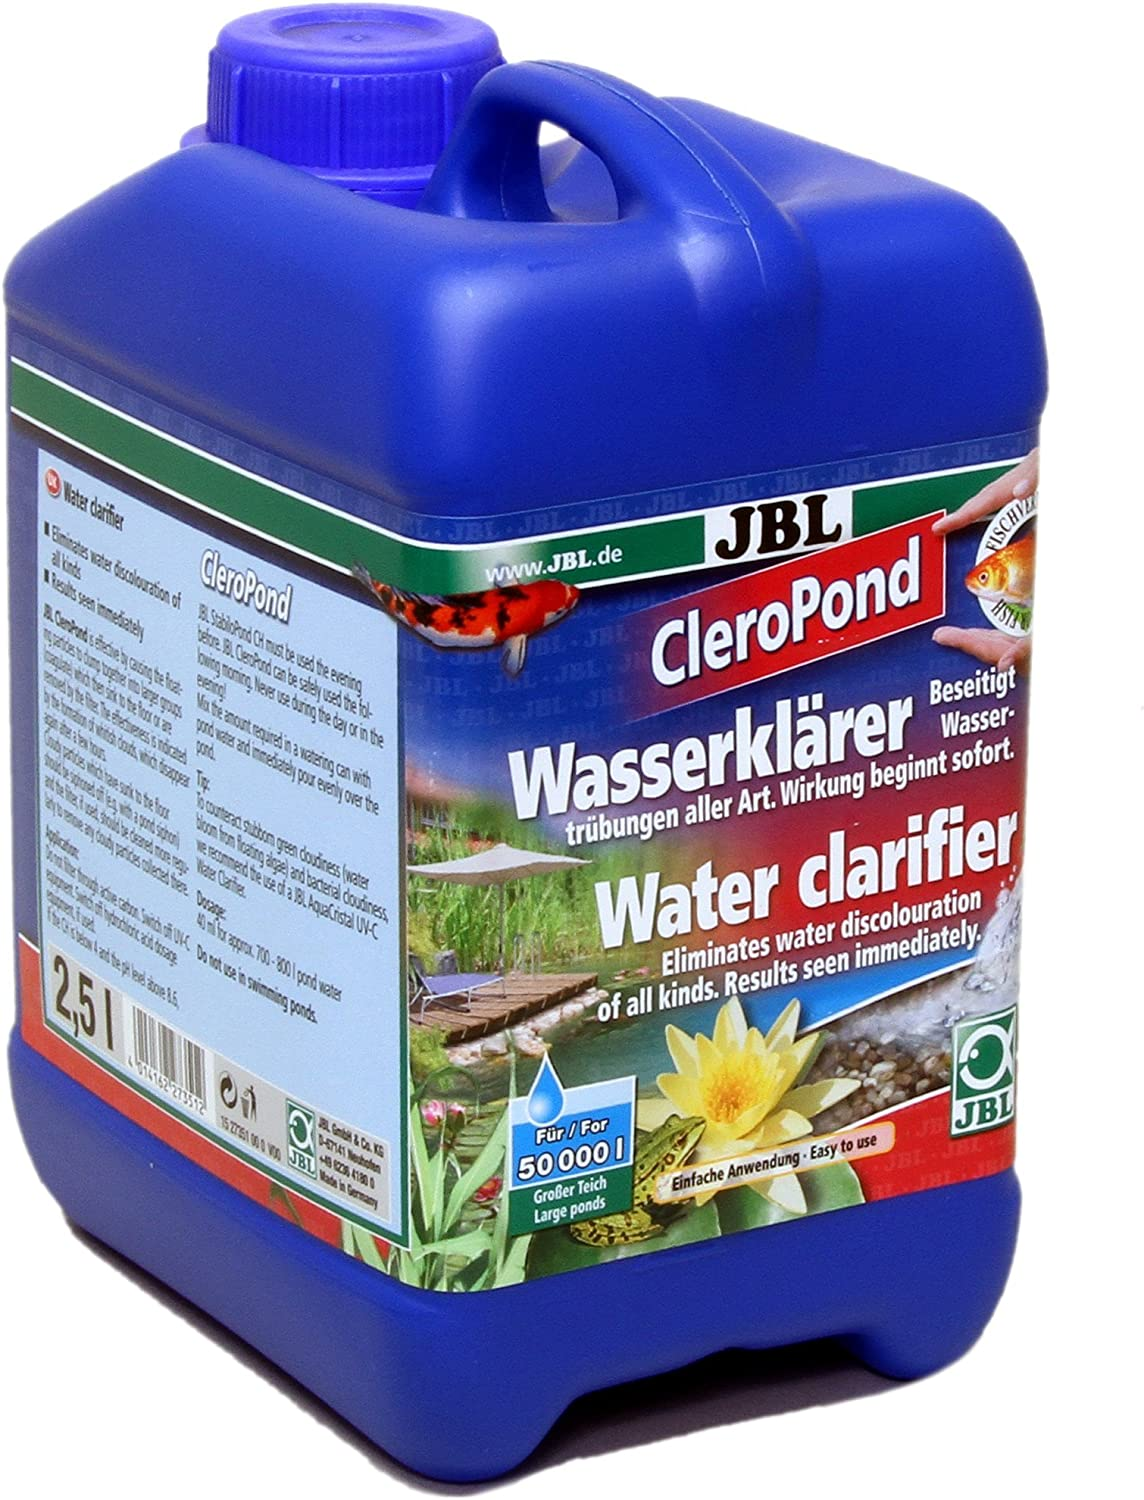 JBL CleroPond 2,5 l, Water clarifier for the elimination of water cloudiness